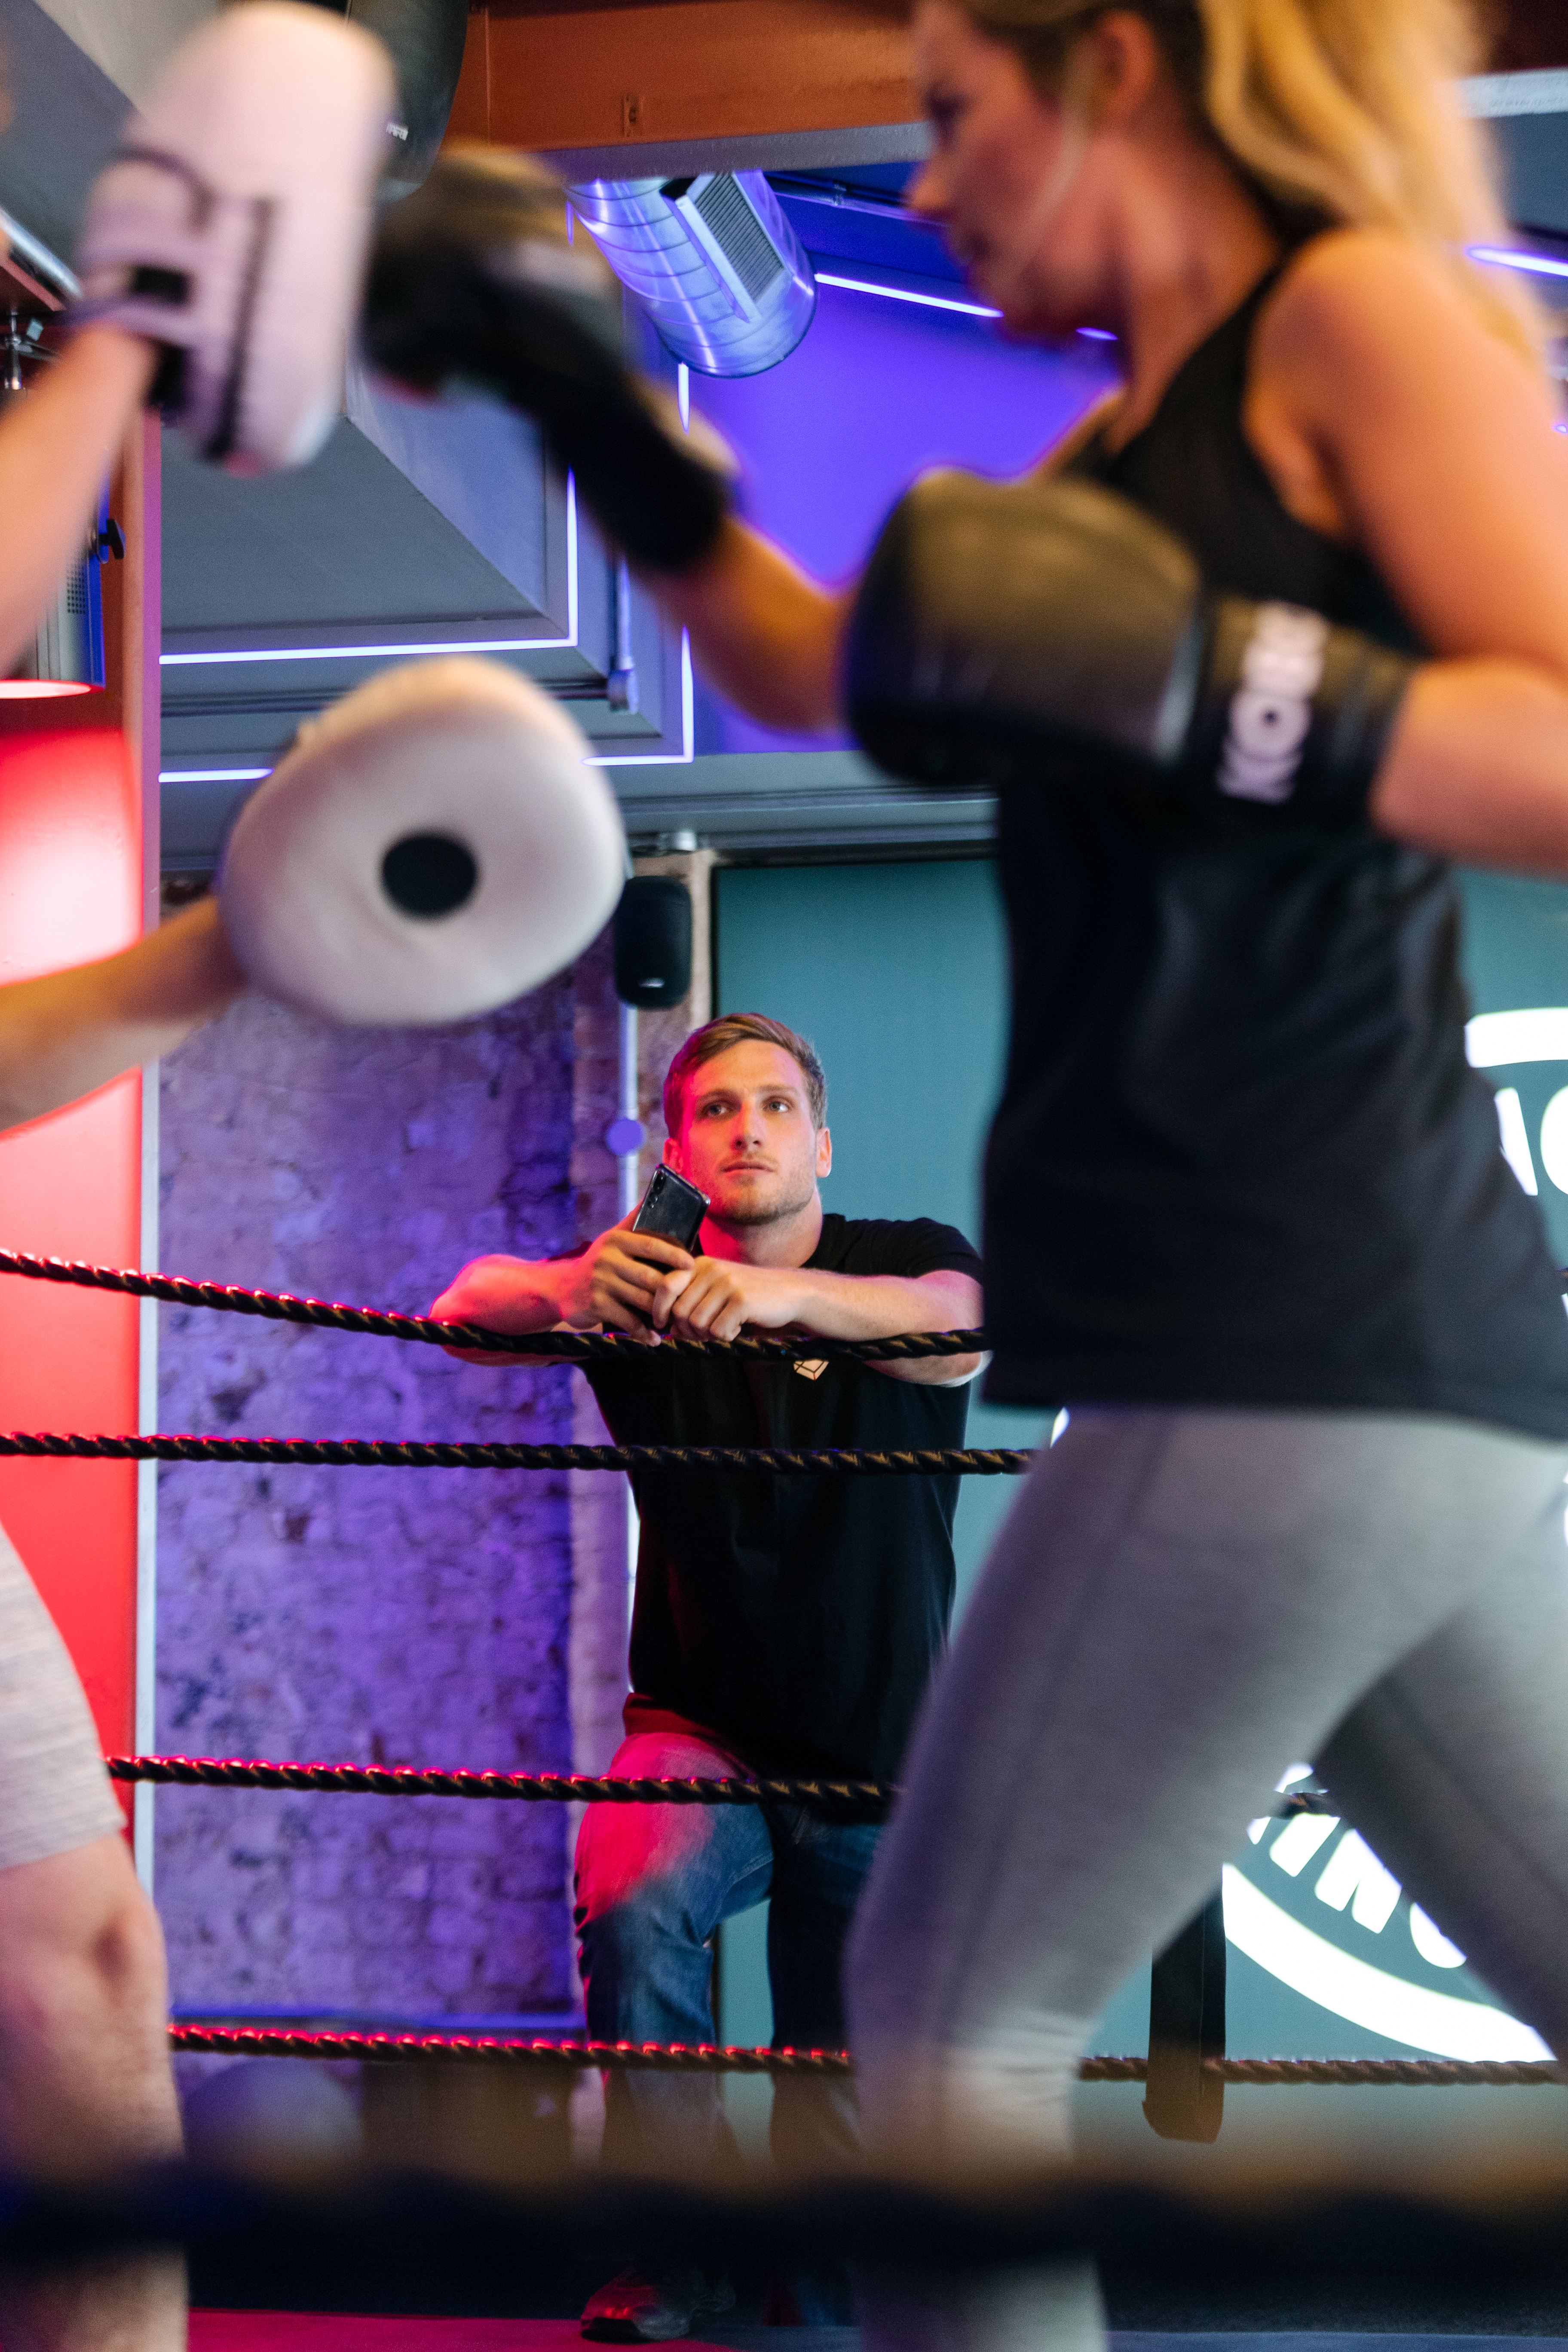 Male engineer monitors boxing performance through athletic devices. Female boxer trains.